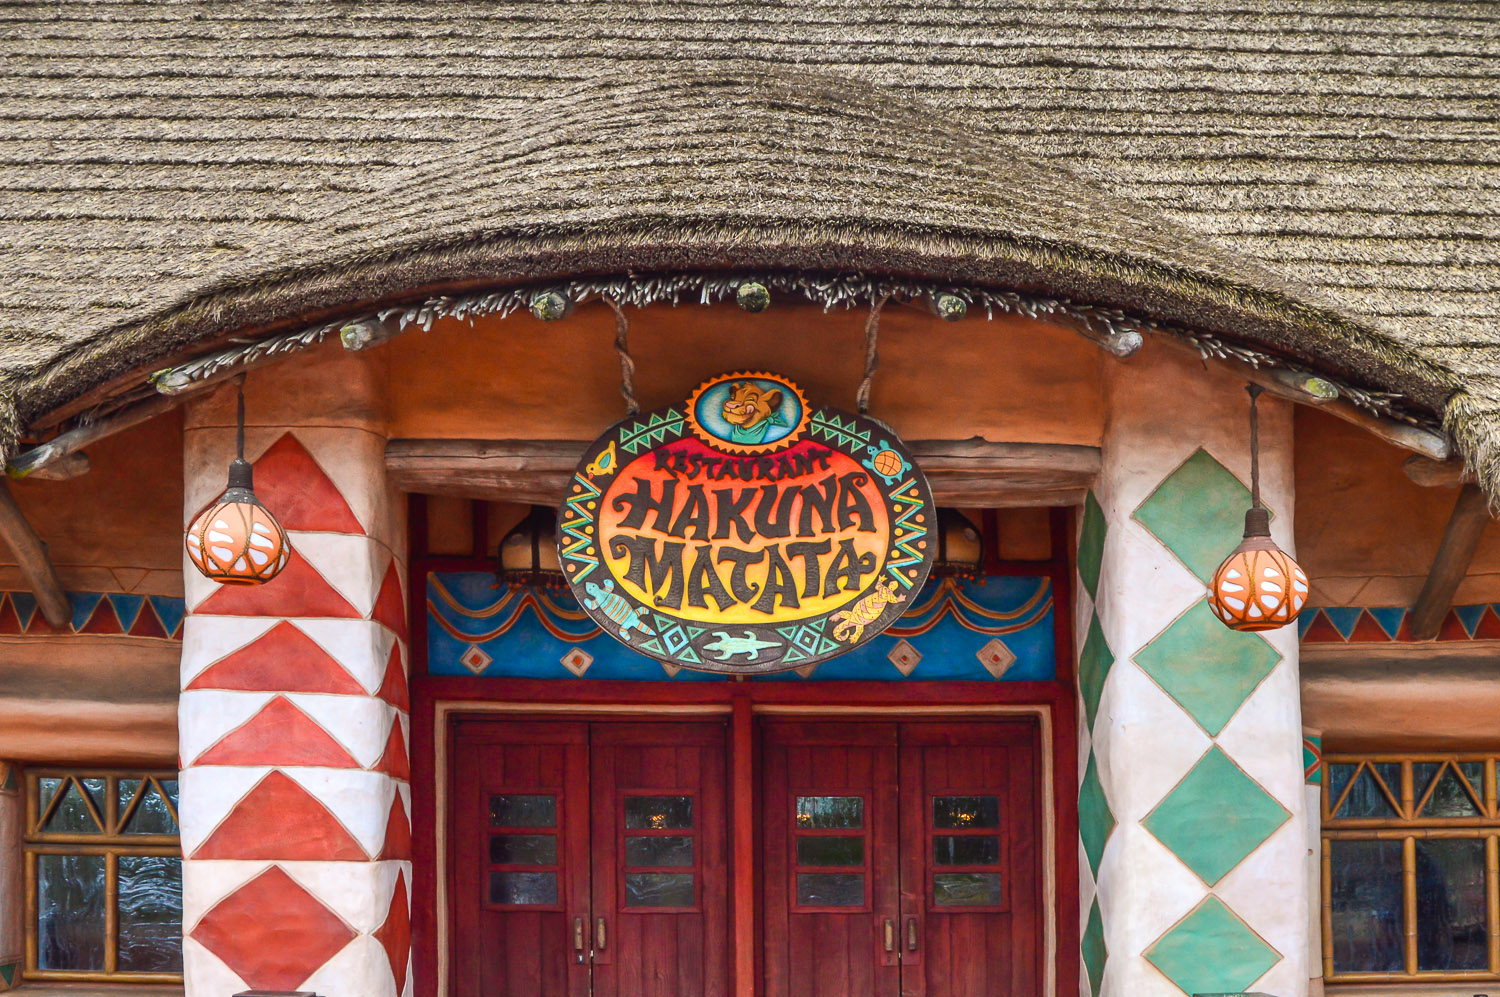 disneyland_paris_hakuna_matata_front_entrance